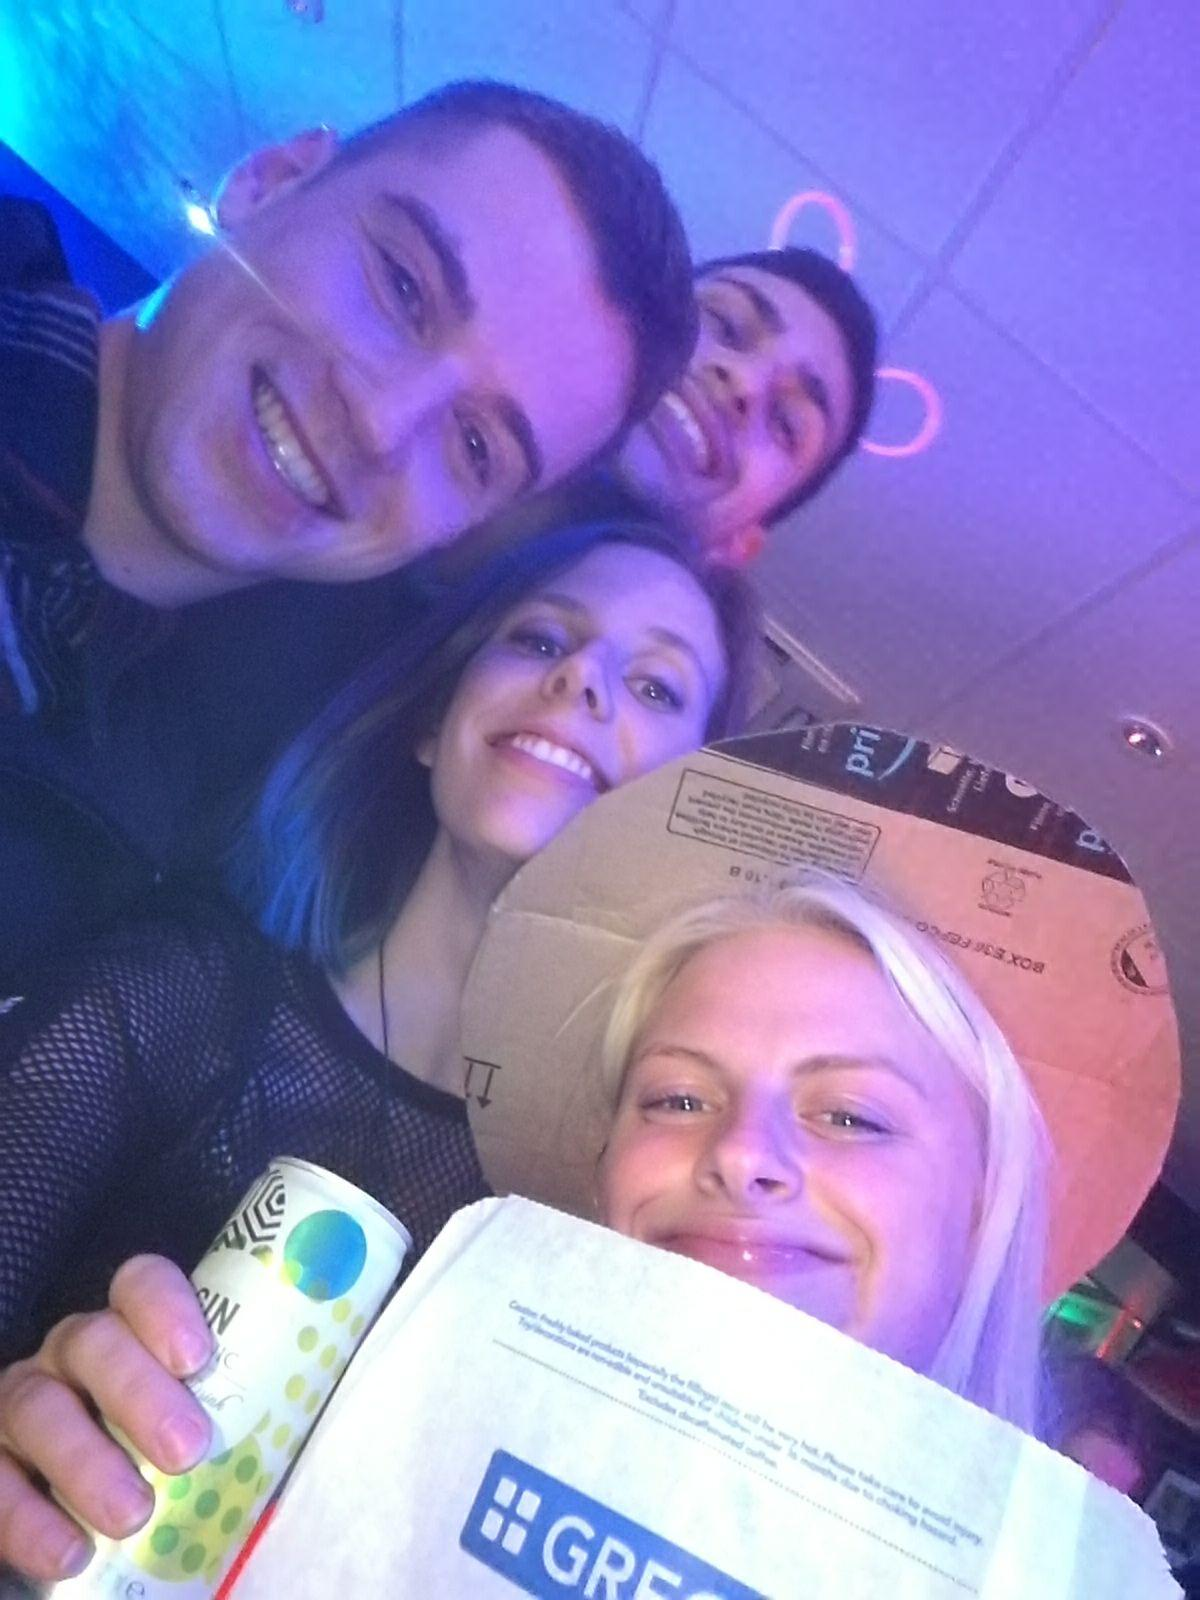 Nikki and her mates on their very own Greggs night, so jammy